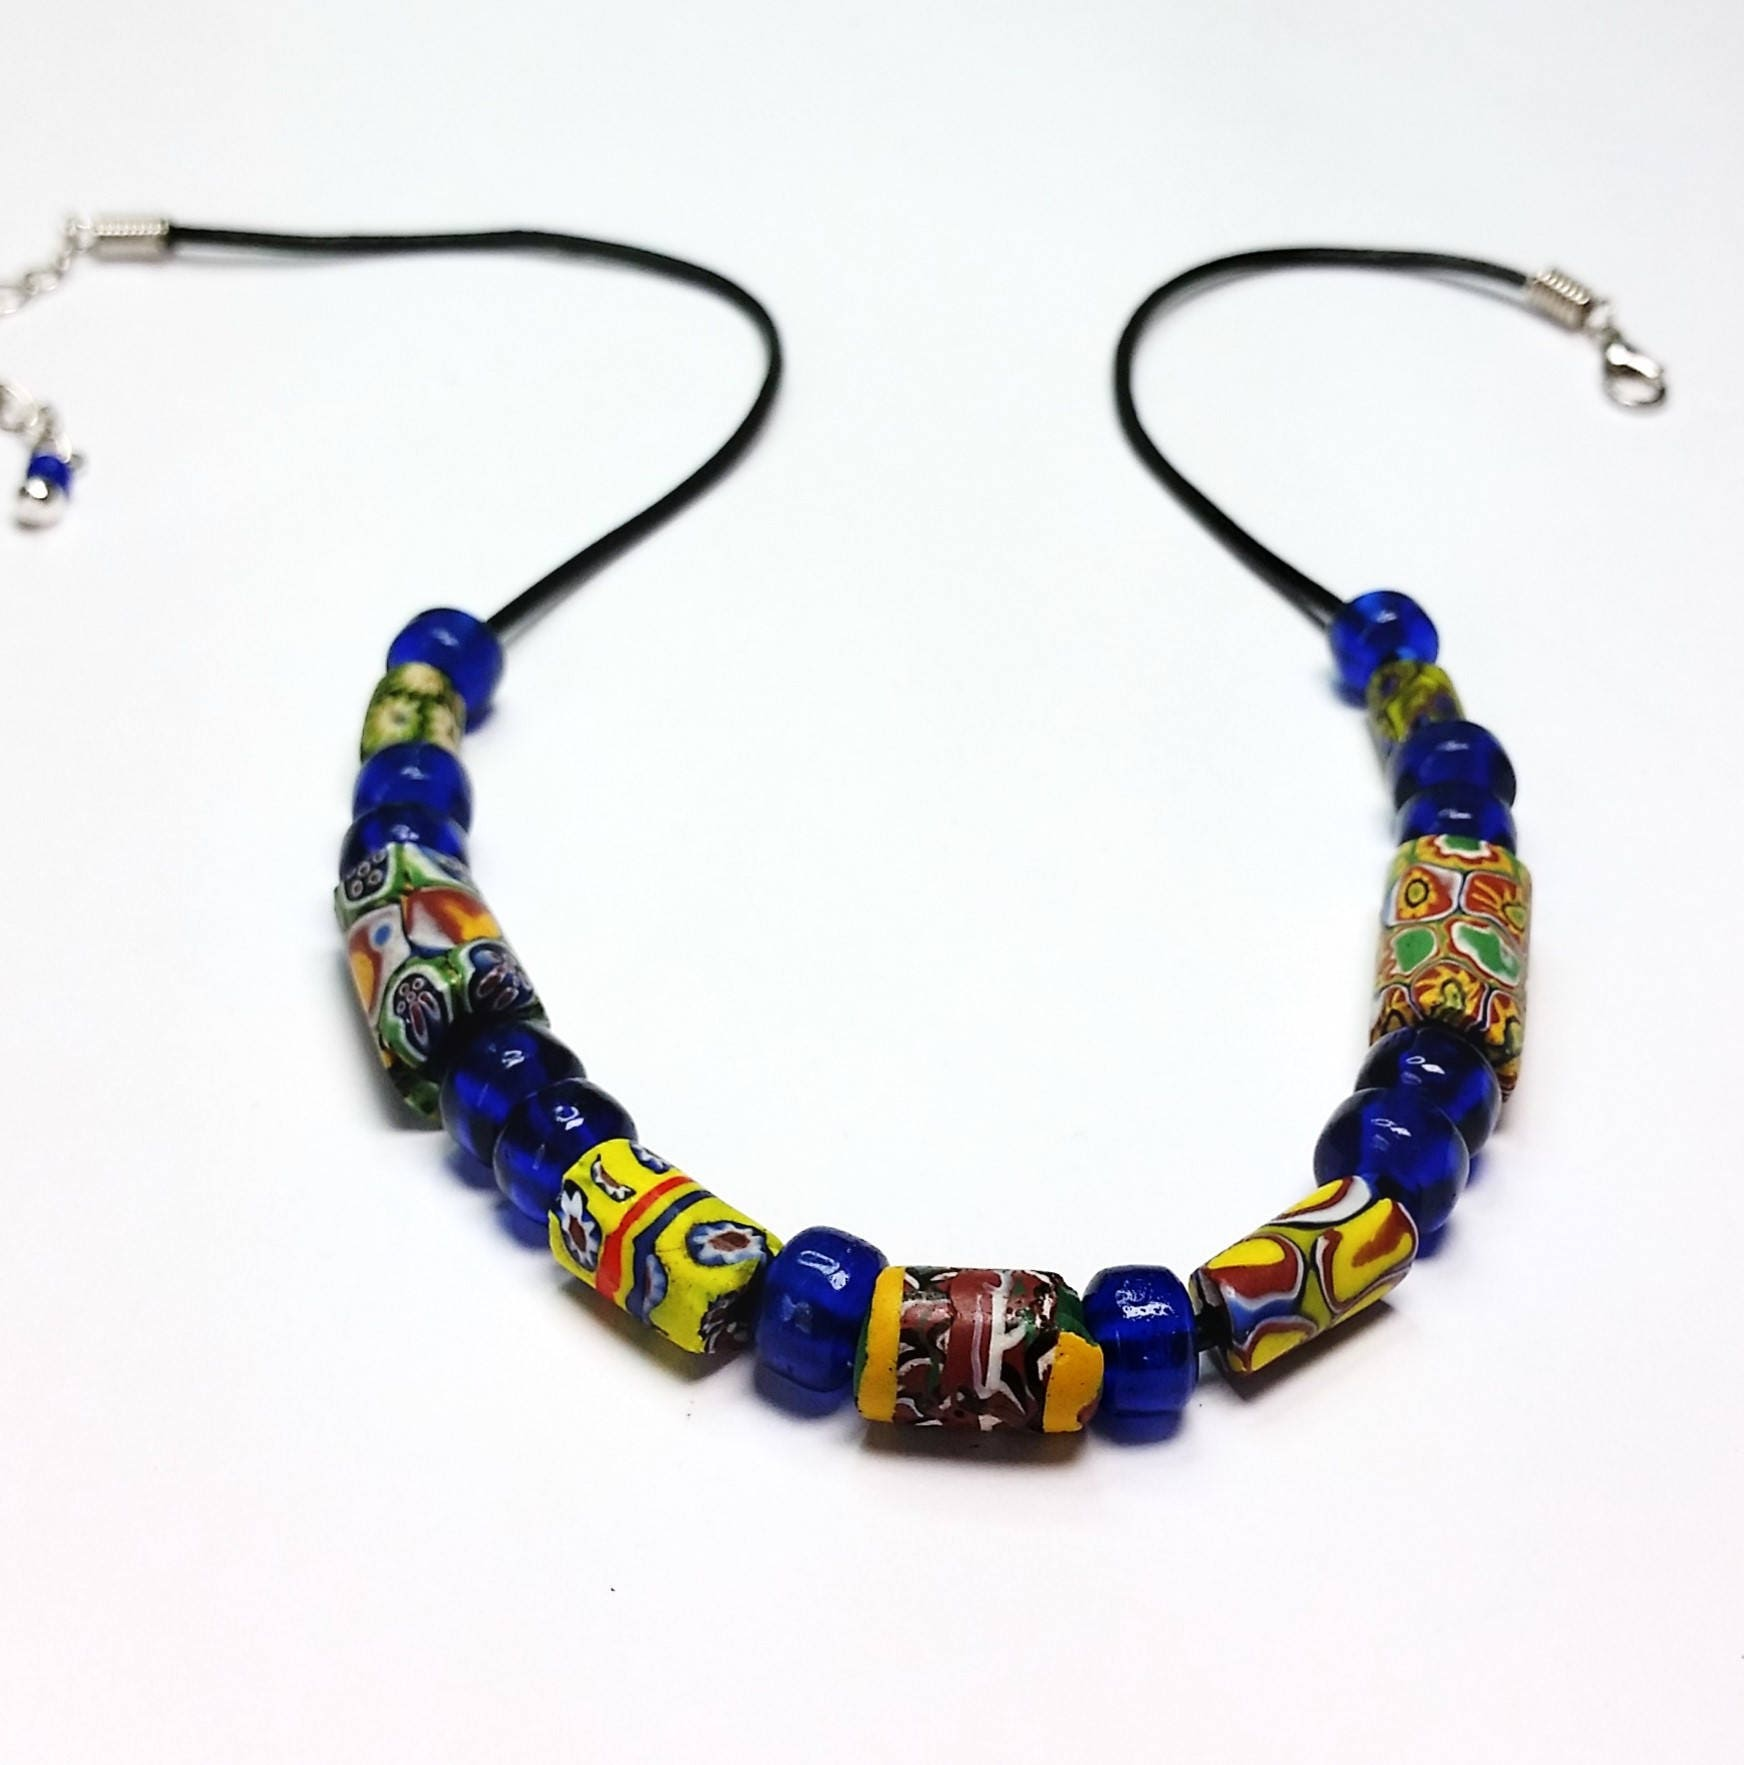 tribal amber hebron african design product moroccan chrysalis trade vintage bead gloria ewing by blue necklace jewelry